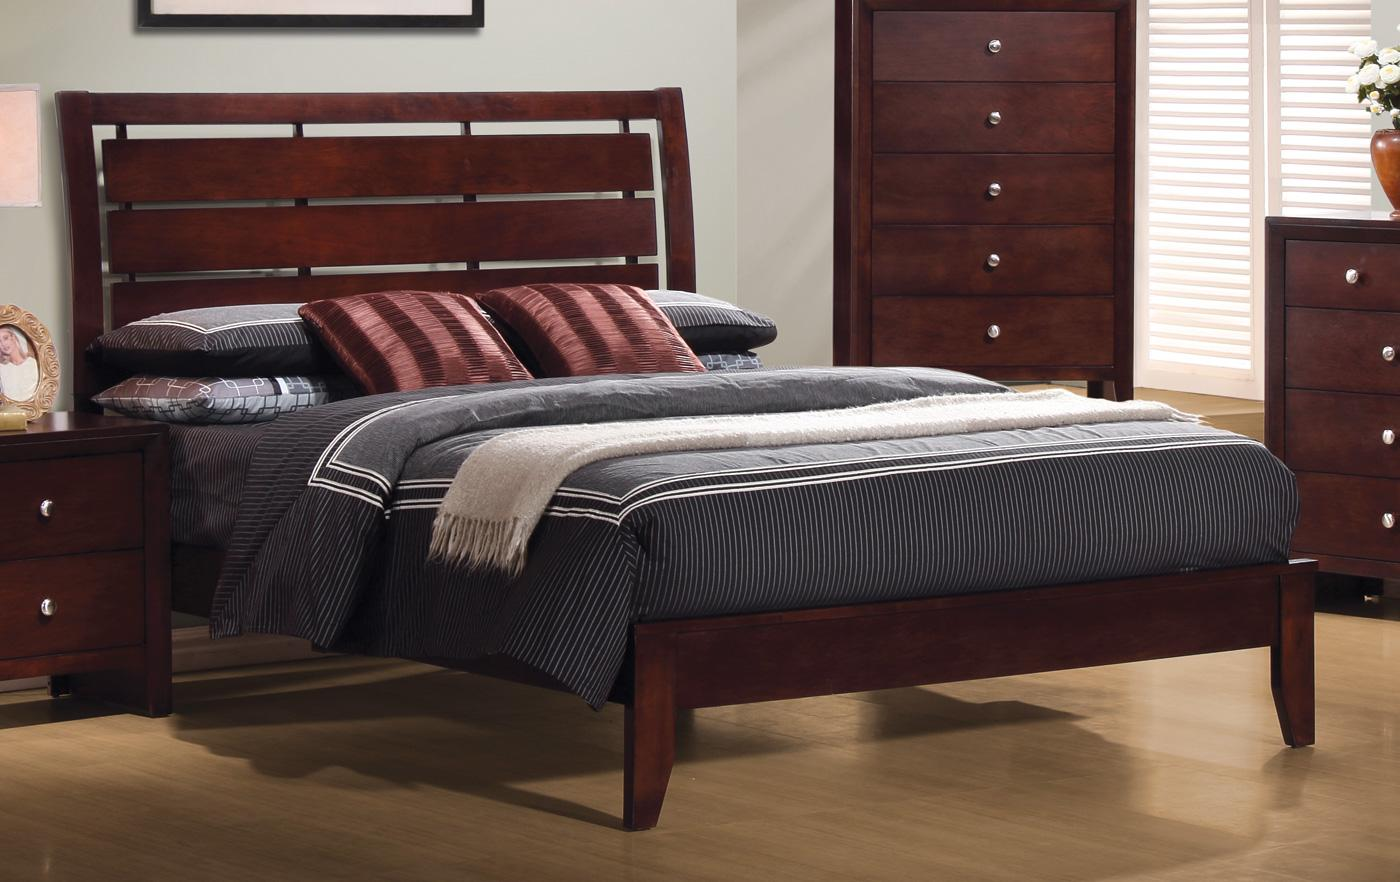 Coaster Serenity Twin Bed Dallas Tx Kids Bed Furniture